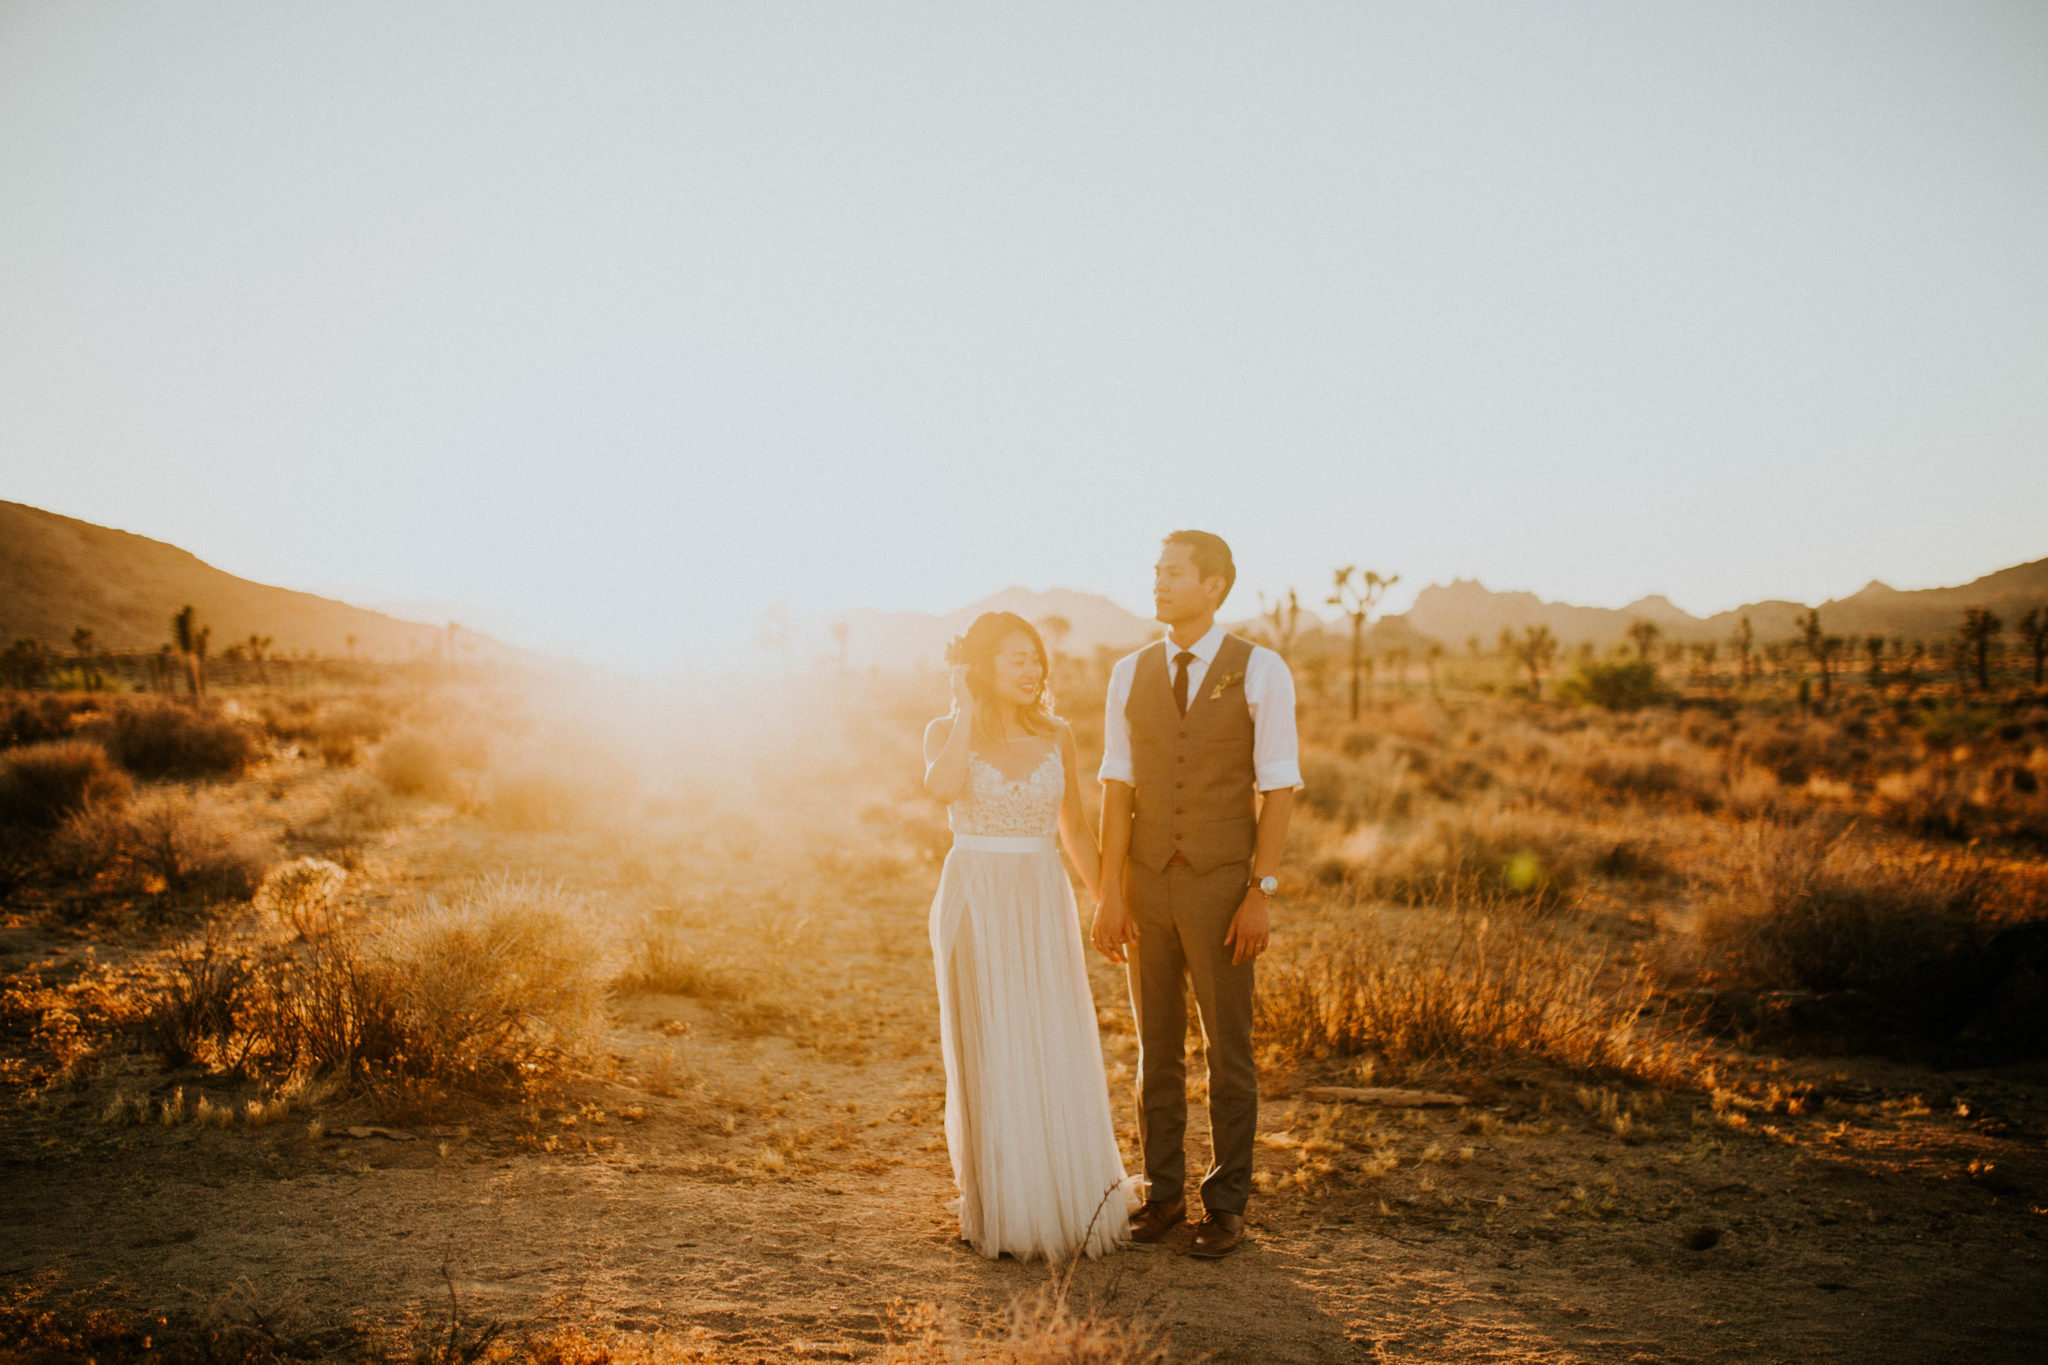 Mandy & Joey Joshua Tree Elopement California Wedding Photographer-239